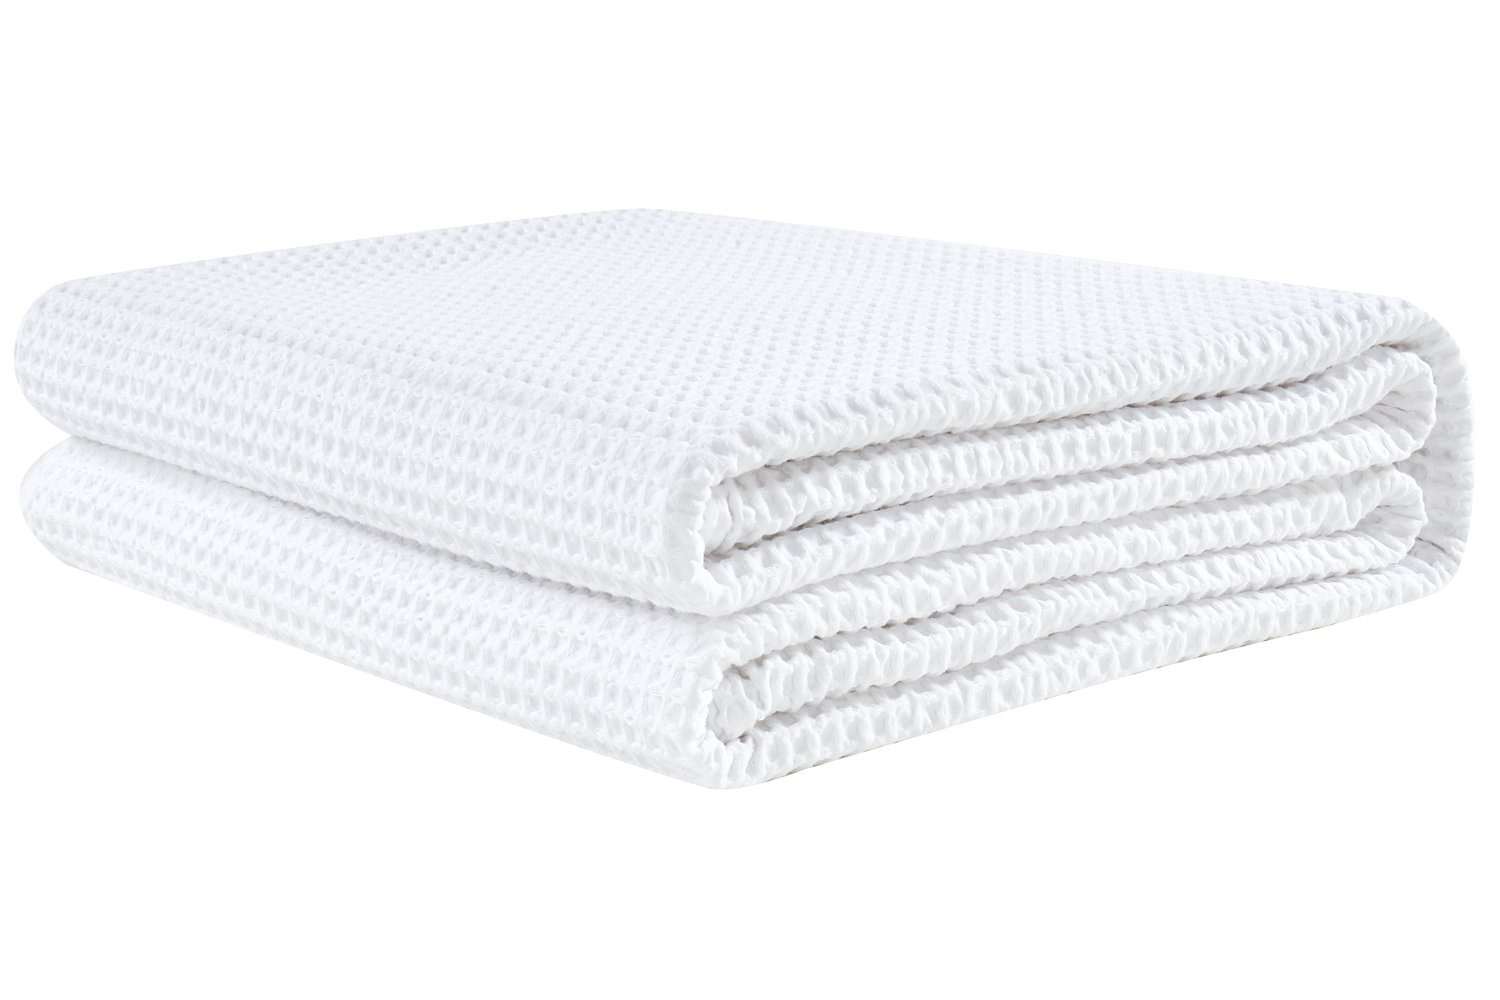 PHF Waffle Weave Blanket 100% Cotton Twin Size White